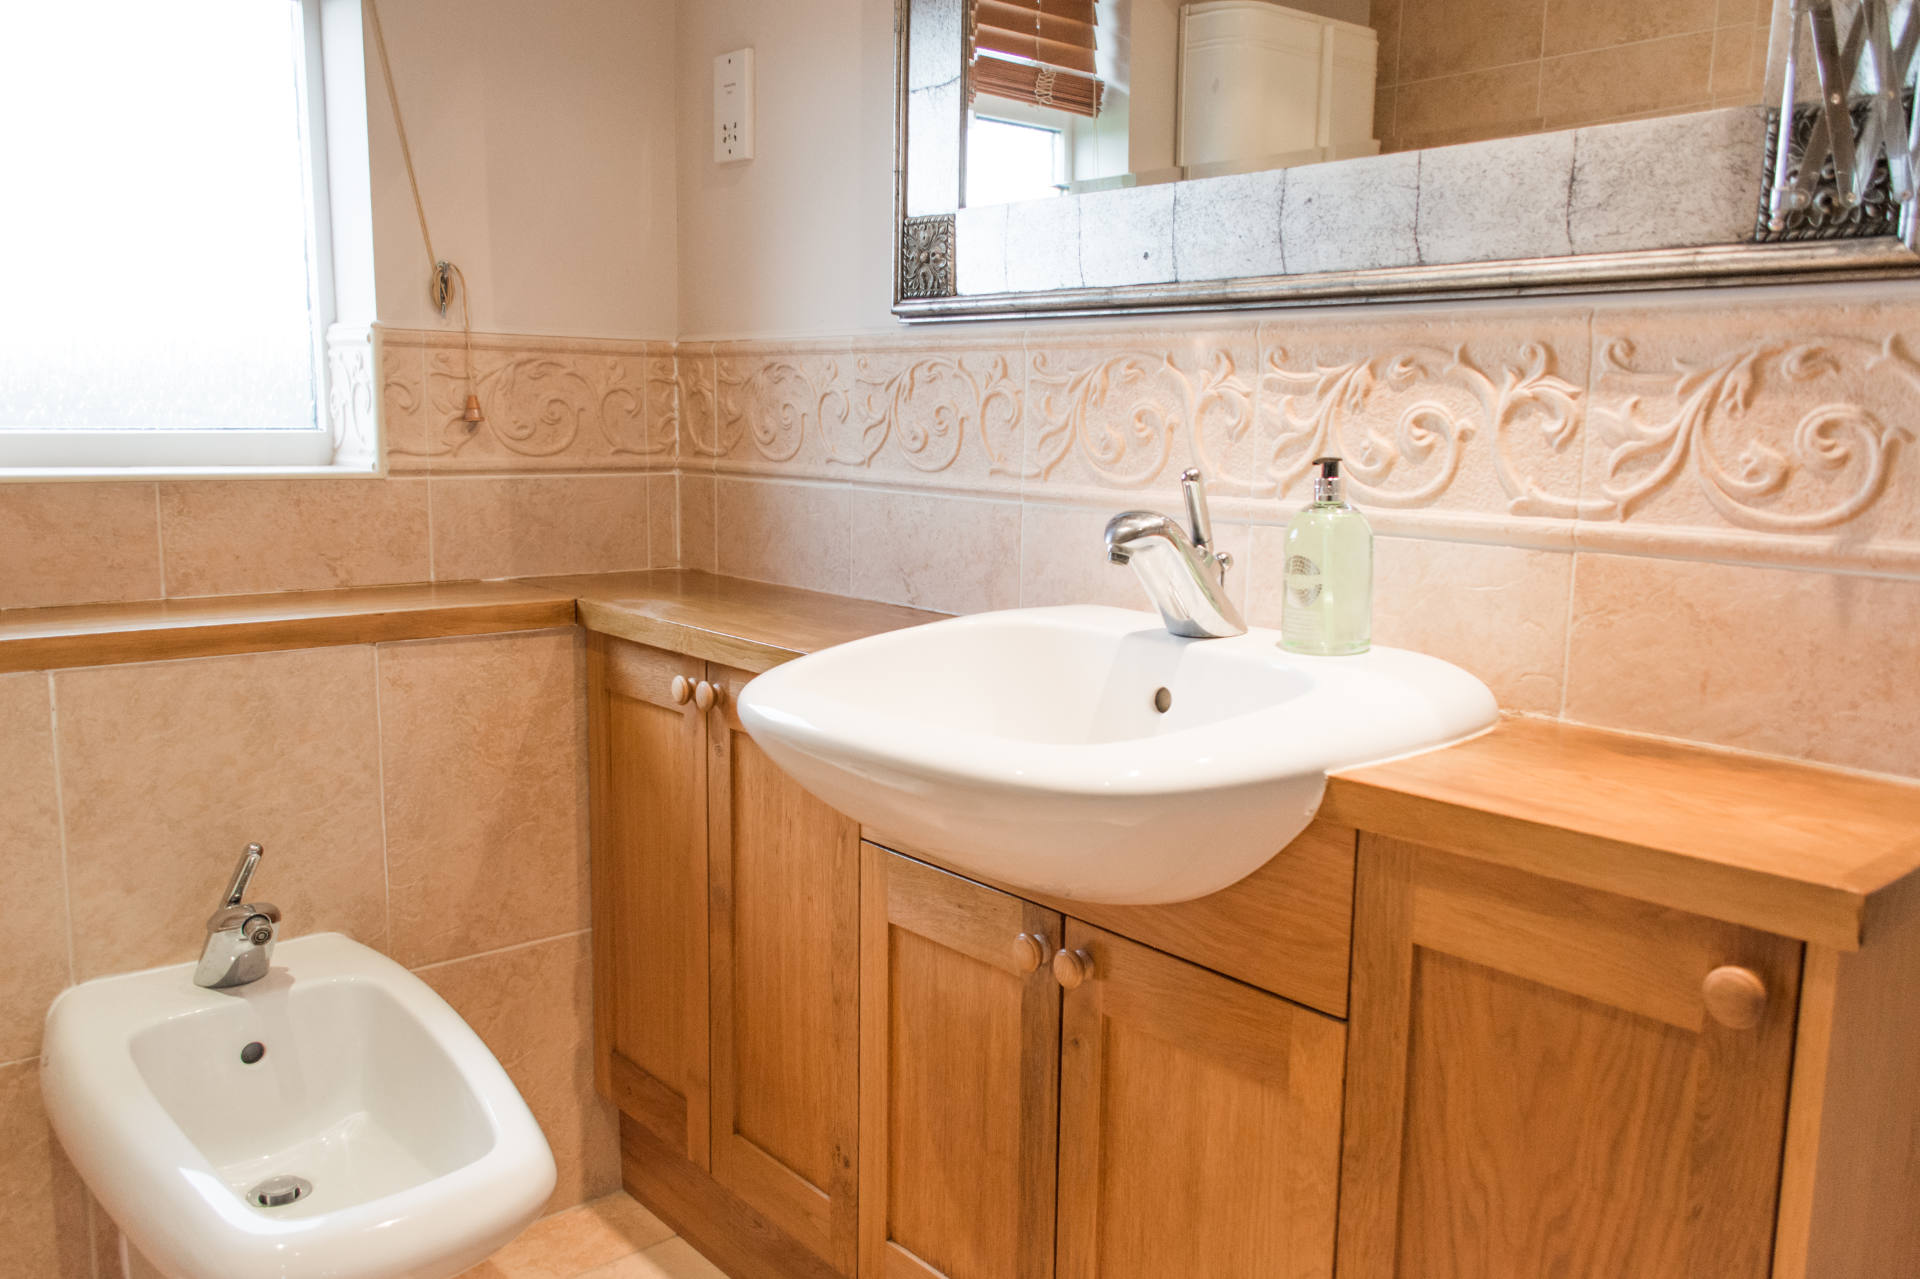 Bathroom sink with wooden cupboards for storage.